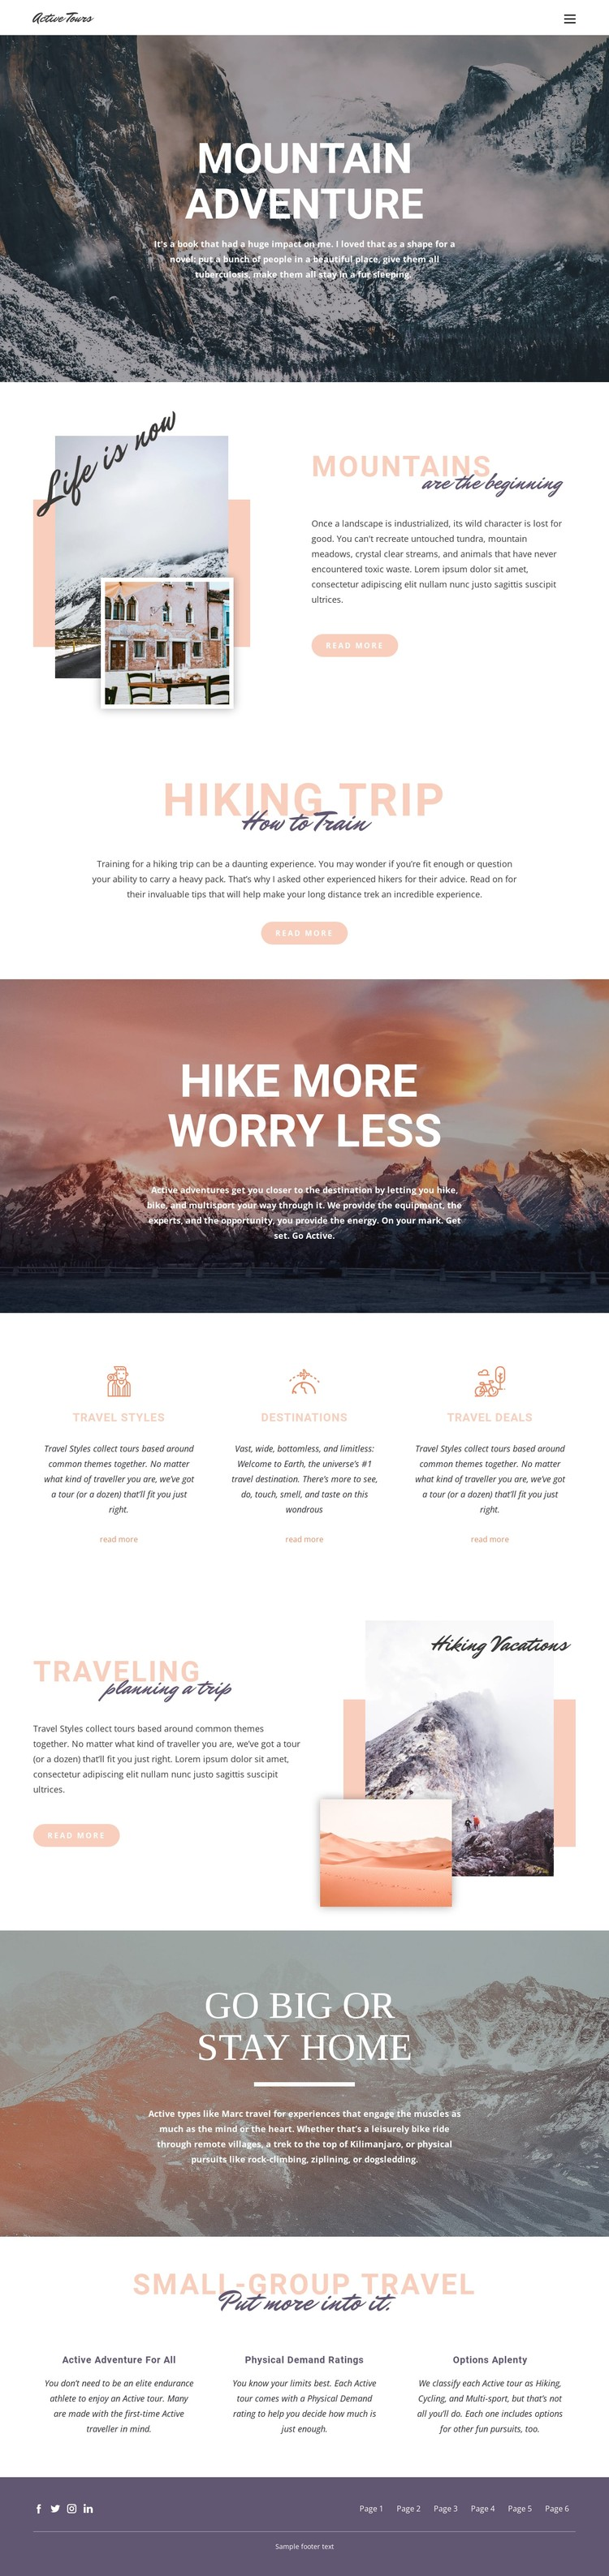 Guided backpacking trips CSS Template